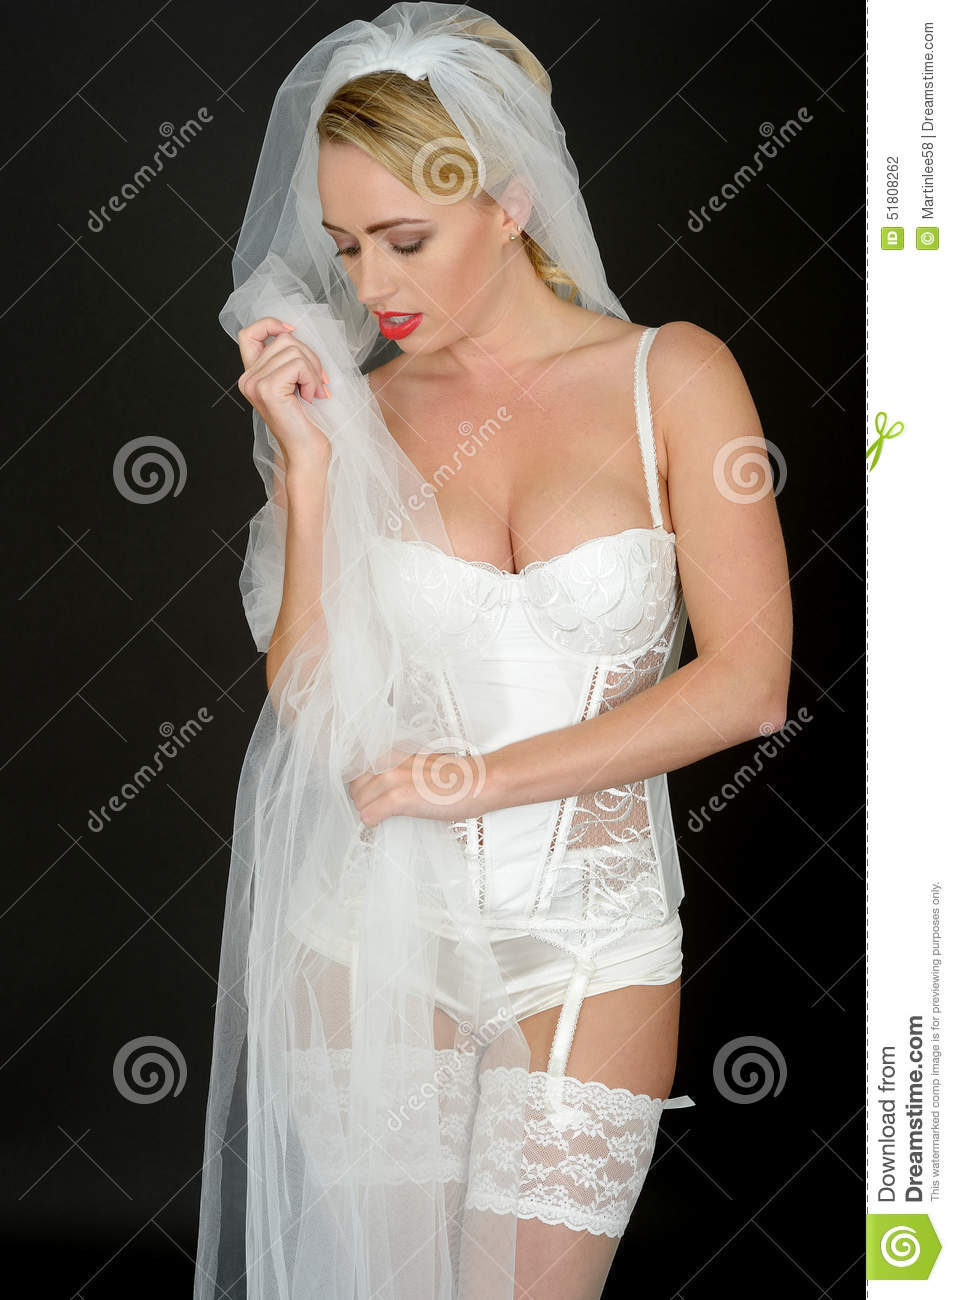 64ca7095ea2 A DSLR royalty free image of a pretty, attractive young bride, wearing a  white corset, veil suspender belt and stockings, in a thoughtful serious  mood, ...